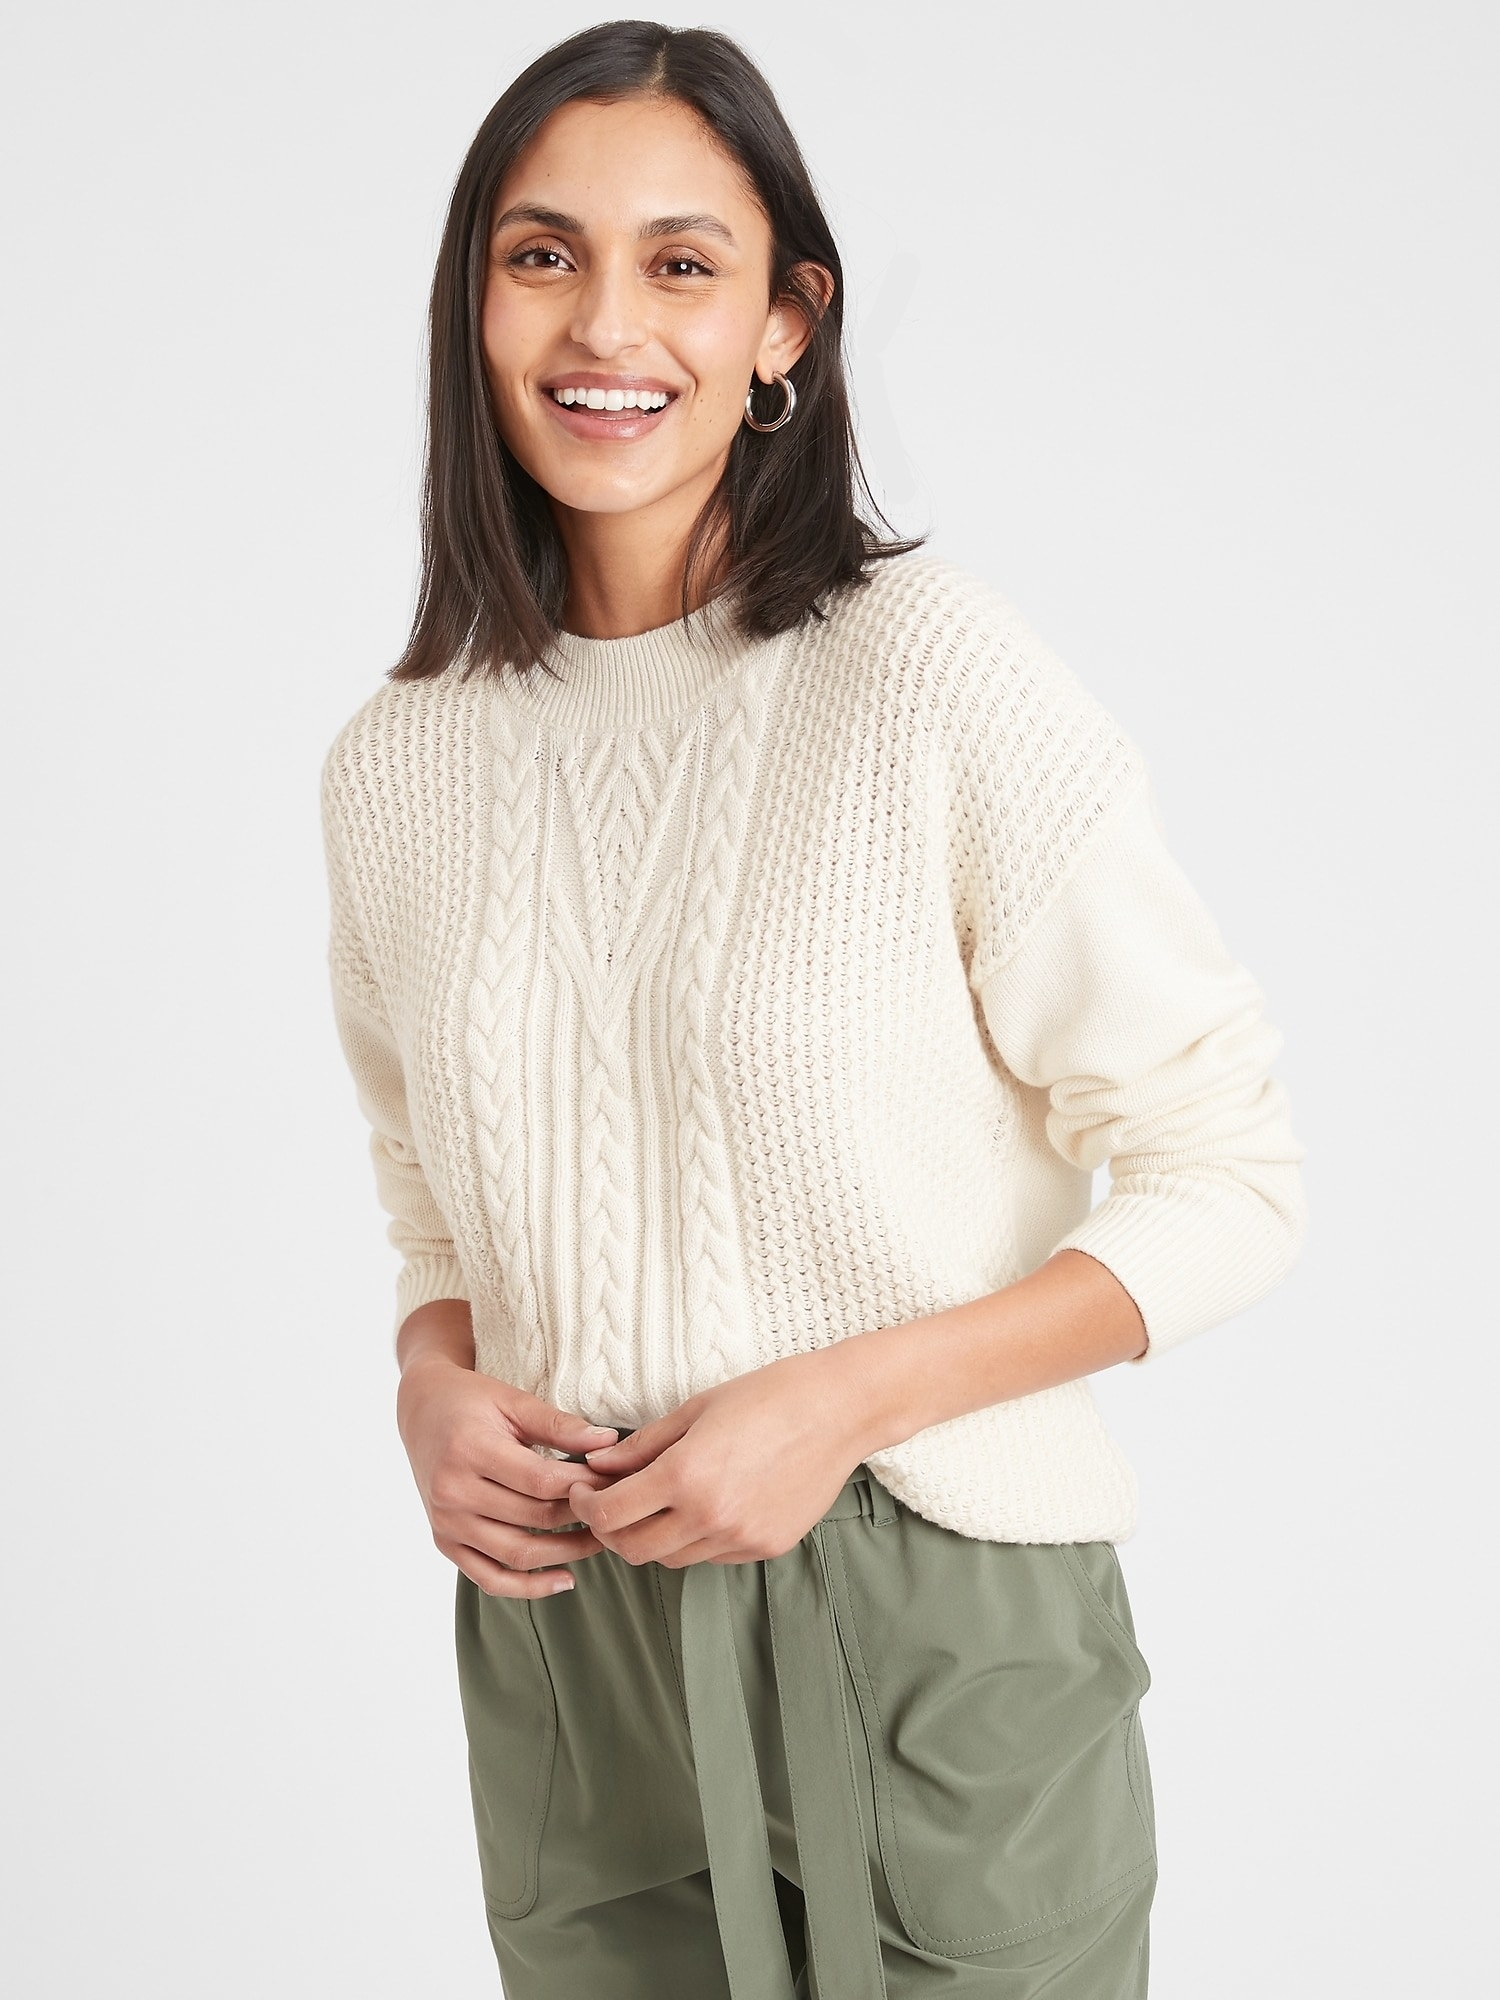 model wearing cable-knit sweater in off white